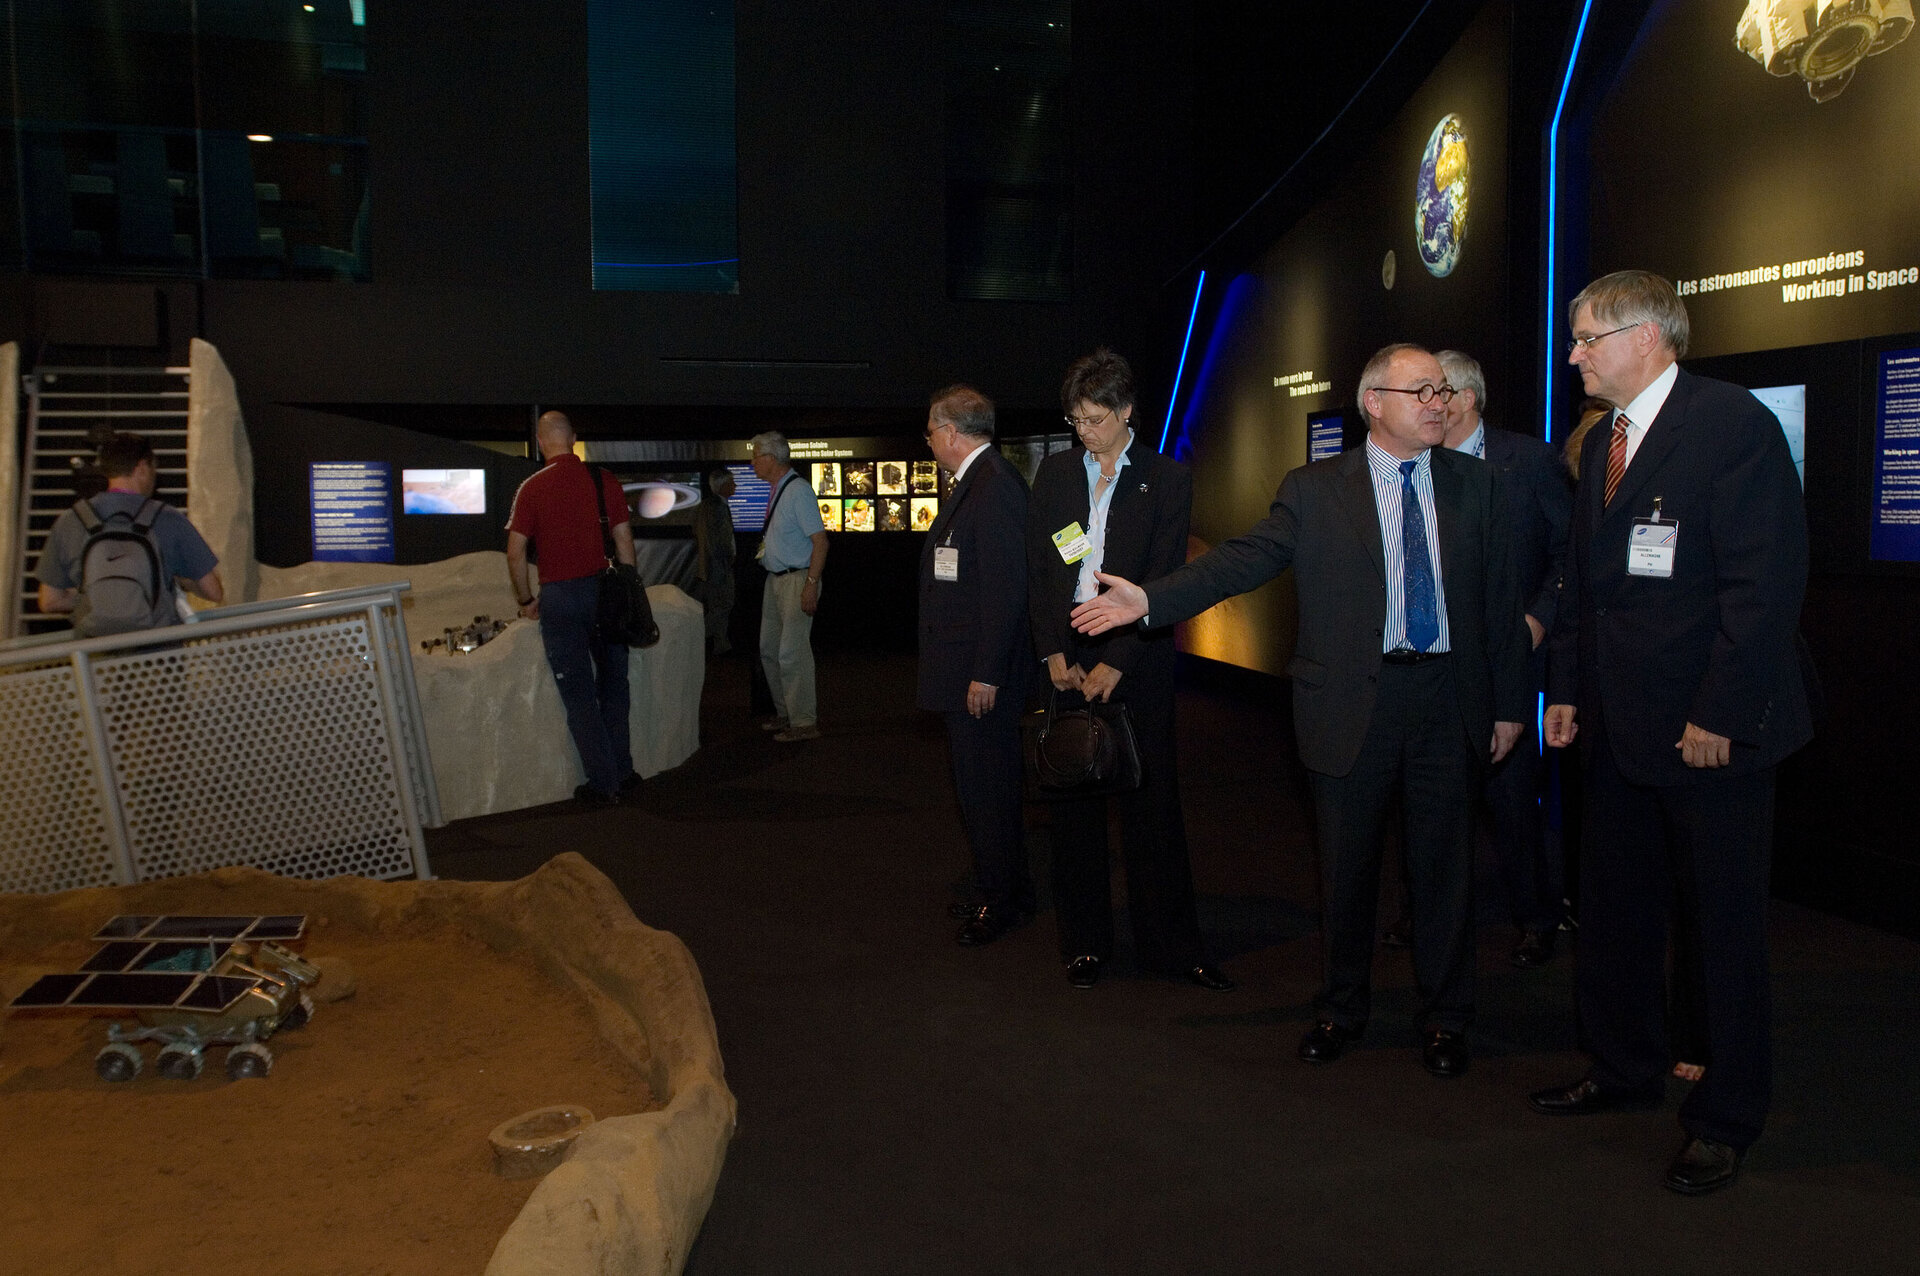 Visit of the ESA pavilion by Mr Petre Hintze, Parliamentary State Secretary in the German Ministry of Economics and Technology